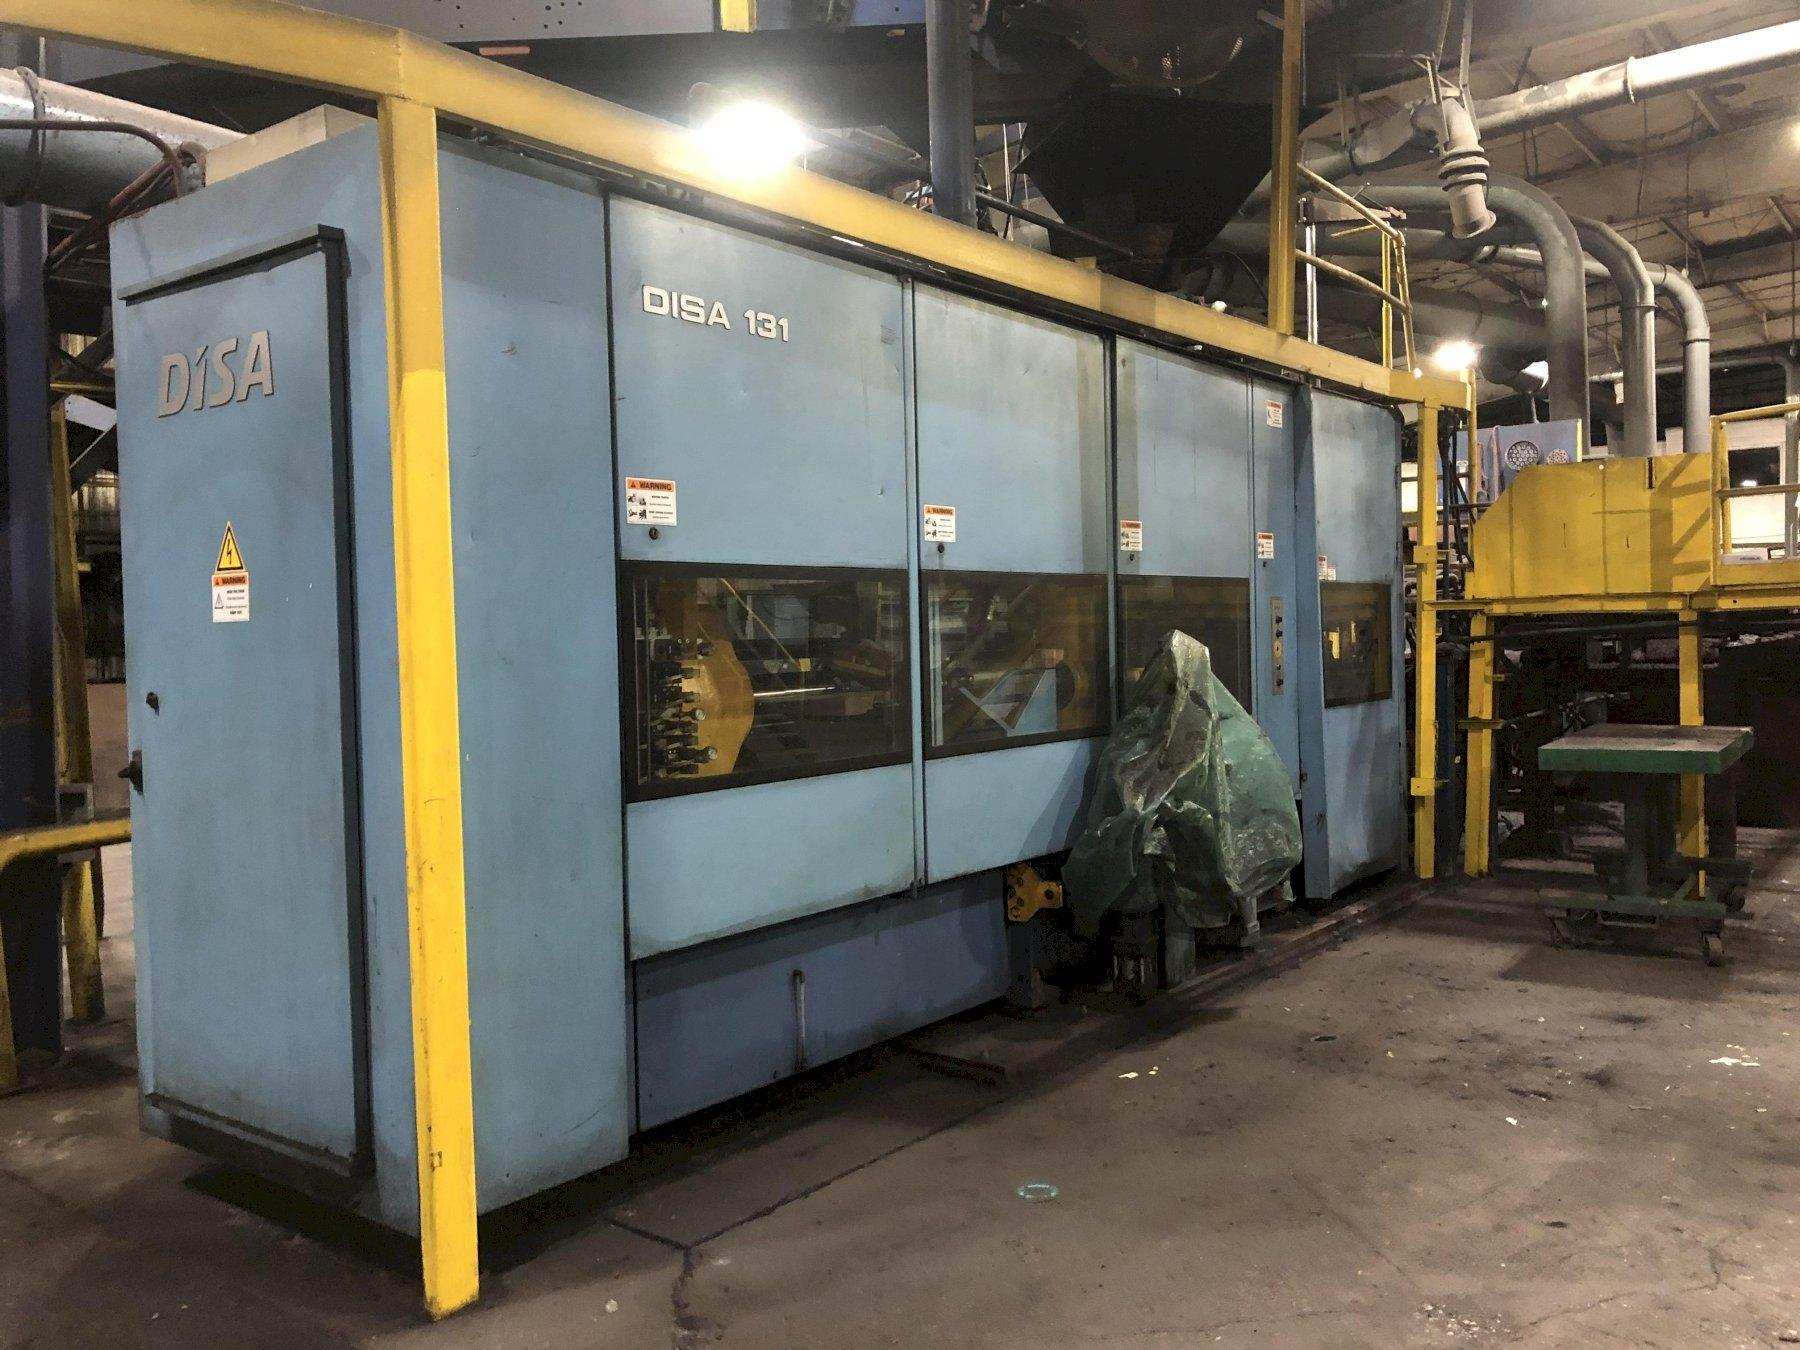 2012 DISAMATIC MODEL 131A (now d3a) AUTOMATIC MOLDING MACHINE S/N 140060 WITH CORE SETTER, CONTROLS, STOPPER ROD POURING SYSTEM WITH INOCULATION FEEDER, APPROX. MOLD COUNT 3,200,000, 57' AUTOMATIC MOL